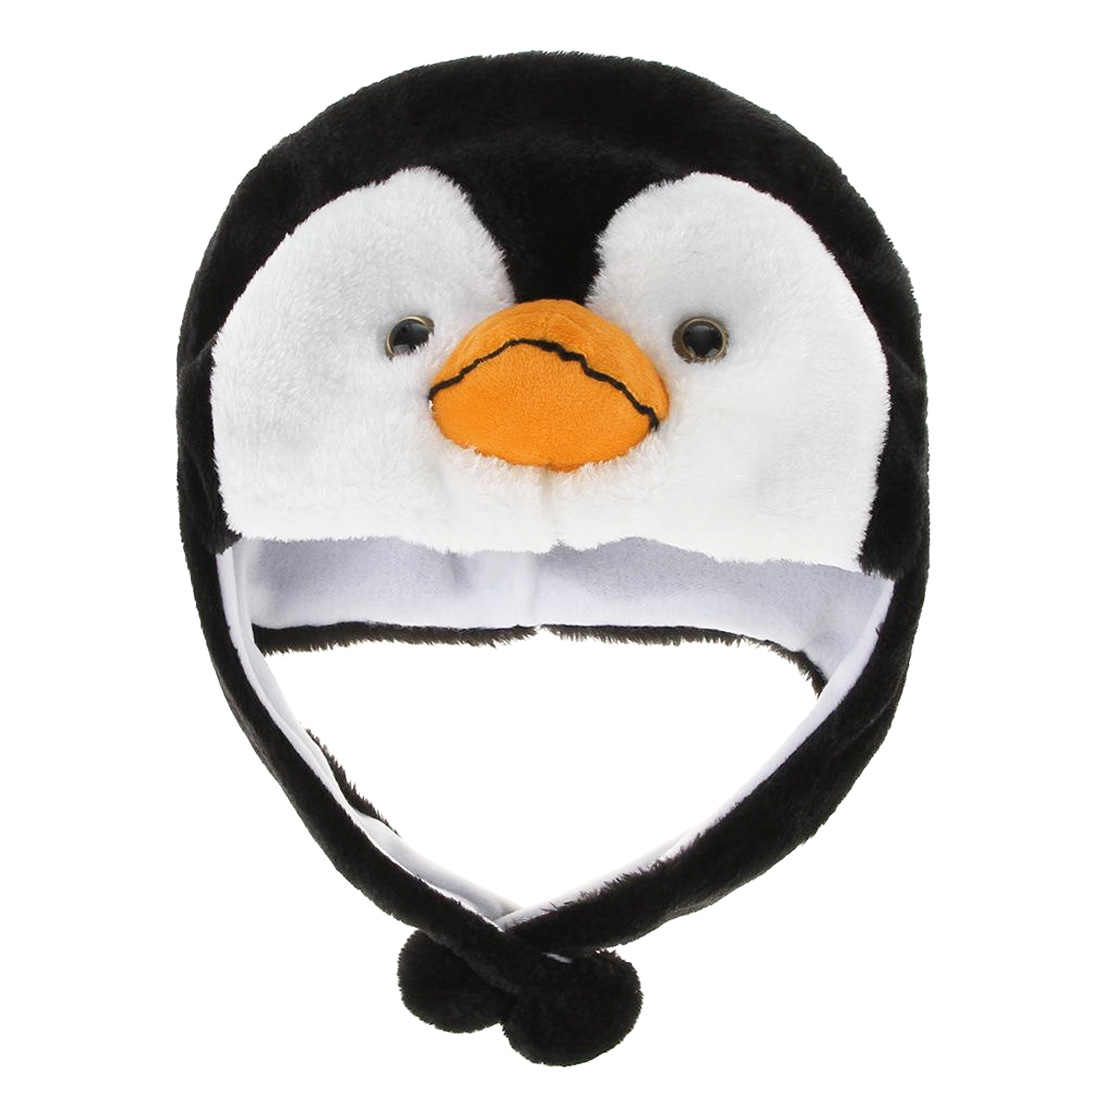 New Cartoon Animal Penguin Mascot Plush Warm Cap Hat Warmer Penguin Earmuffs Men's Bomber Hats Apparel Accessories